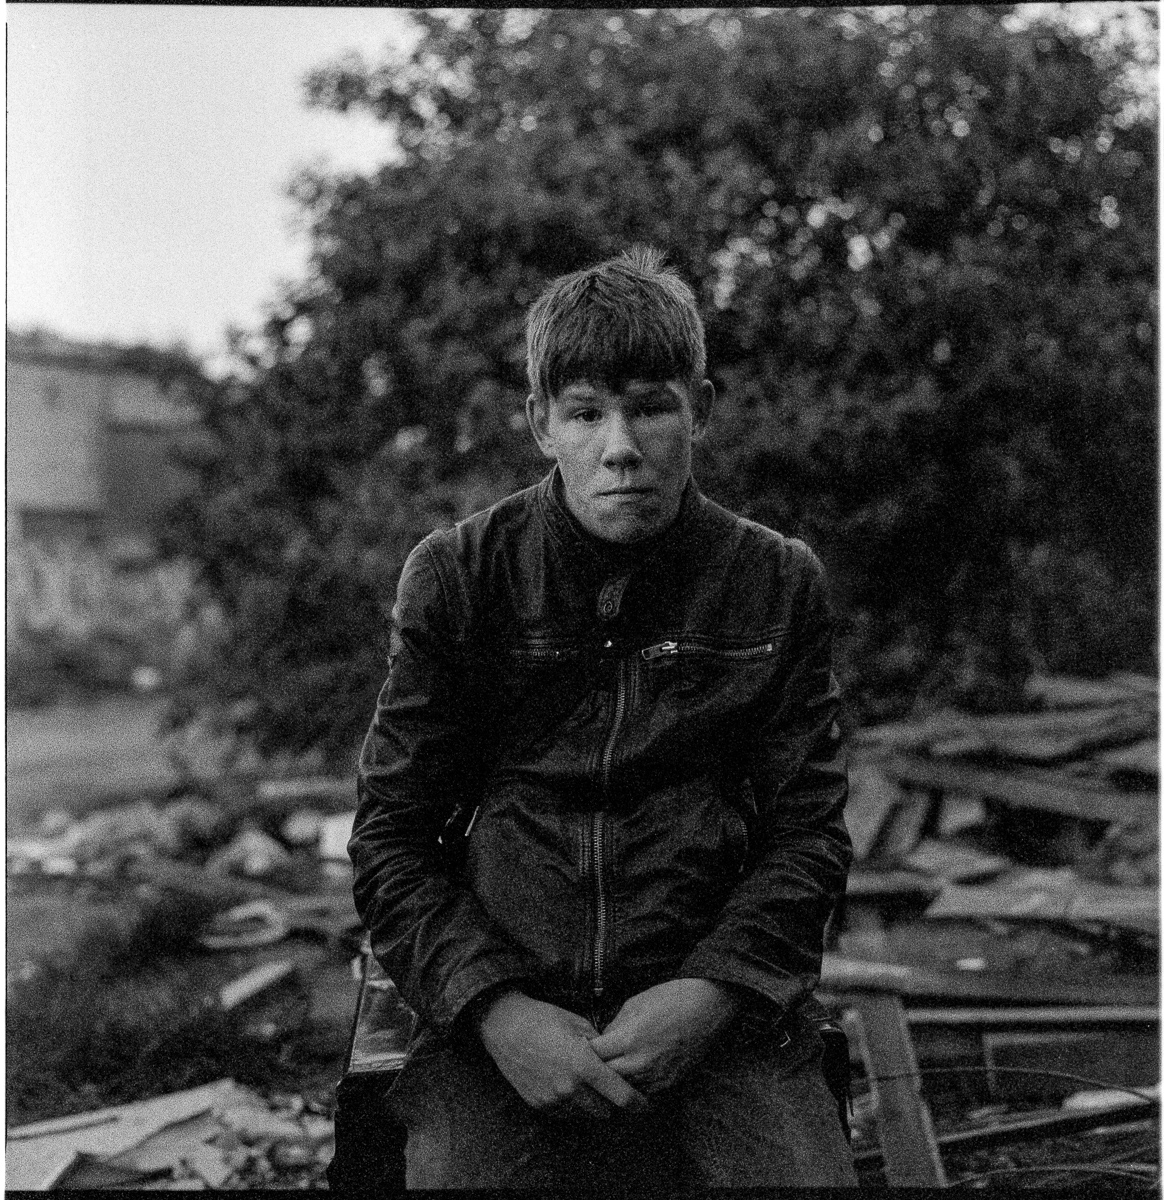 Grainy black and white portrait of a male youth seated on a discarded container, looking to camera. He looks very serious.